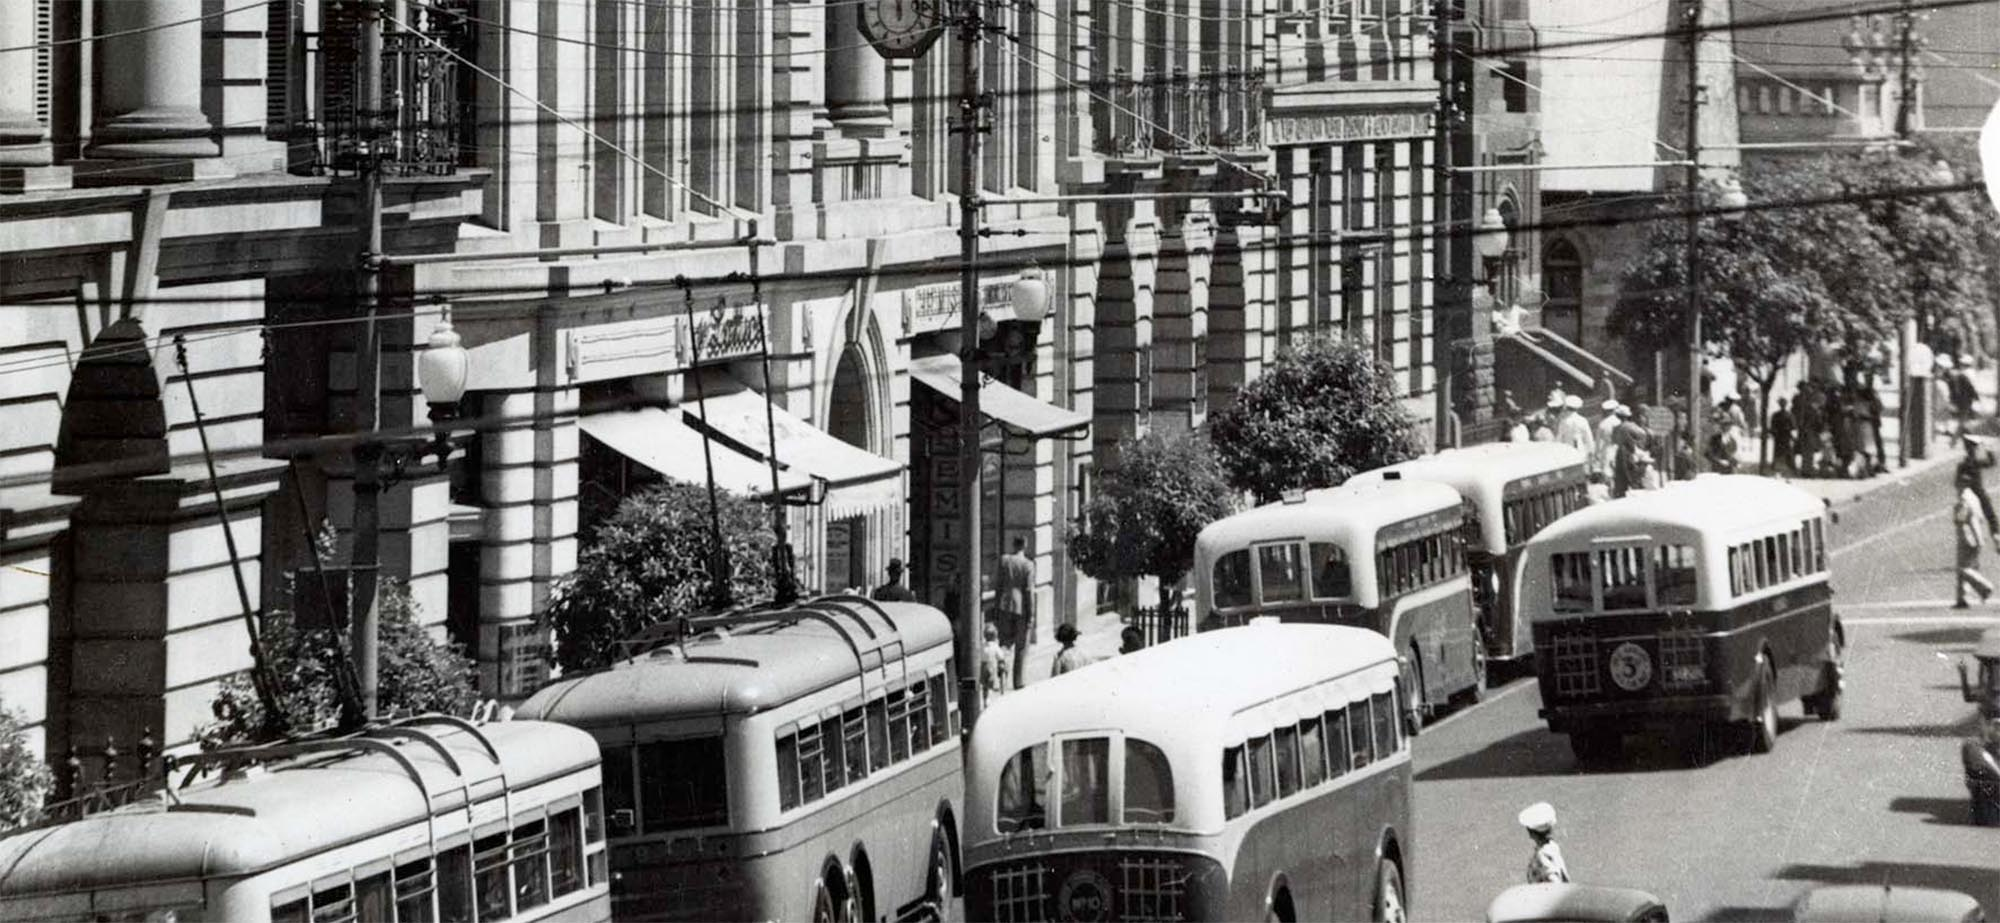 Historical black and white image of St Georges Terrace